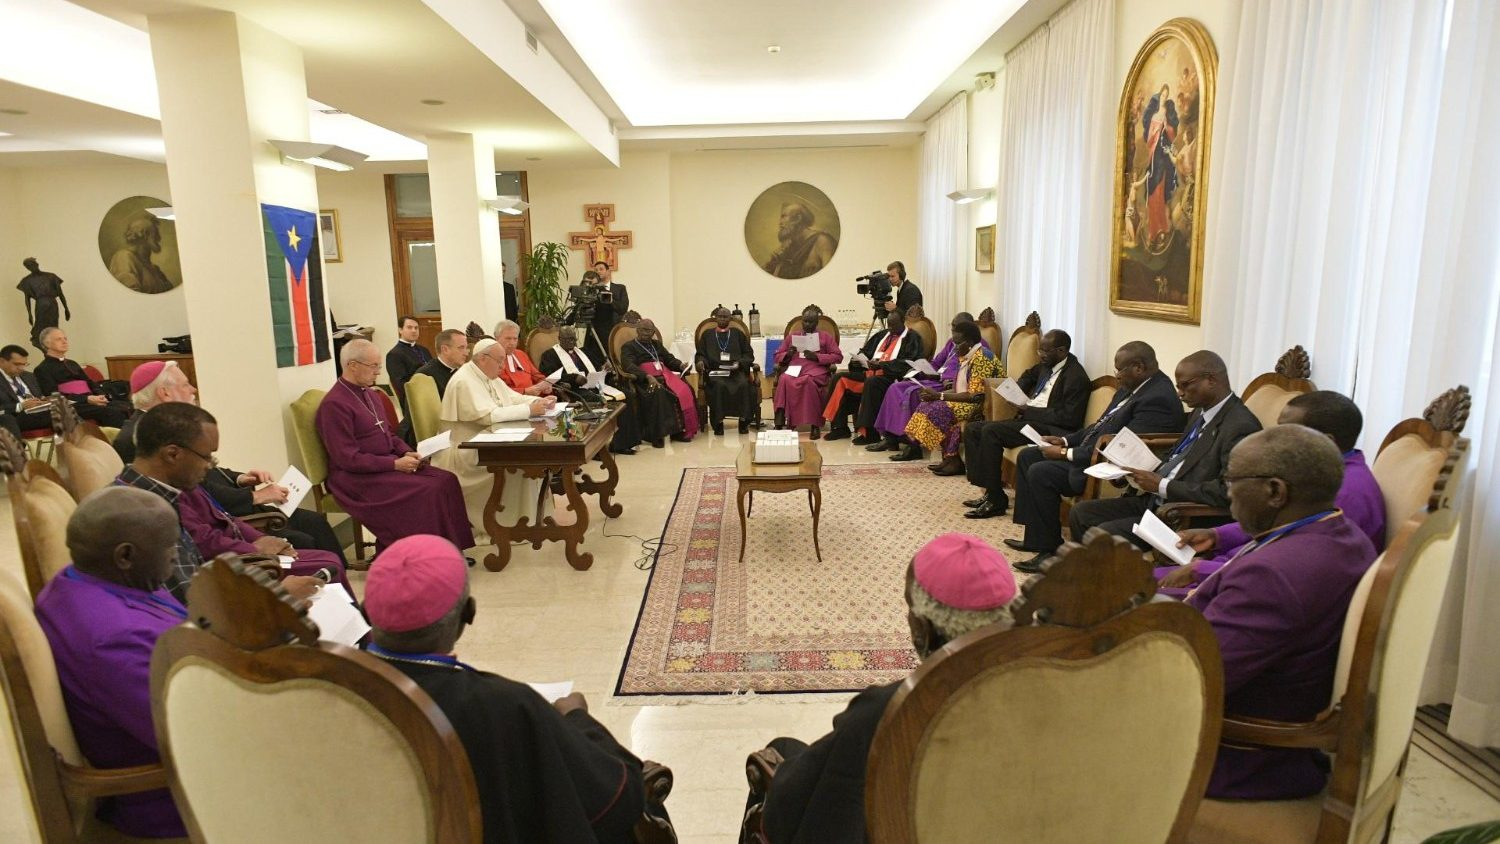 On April 10 and 11, Pope Francis, Archbishop Justin Welby, and Rev. John Chalmers (Church of Scotland) led a retreat for the political and religious leaders of South Sudan